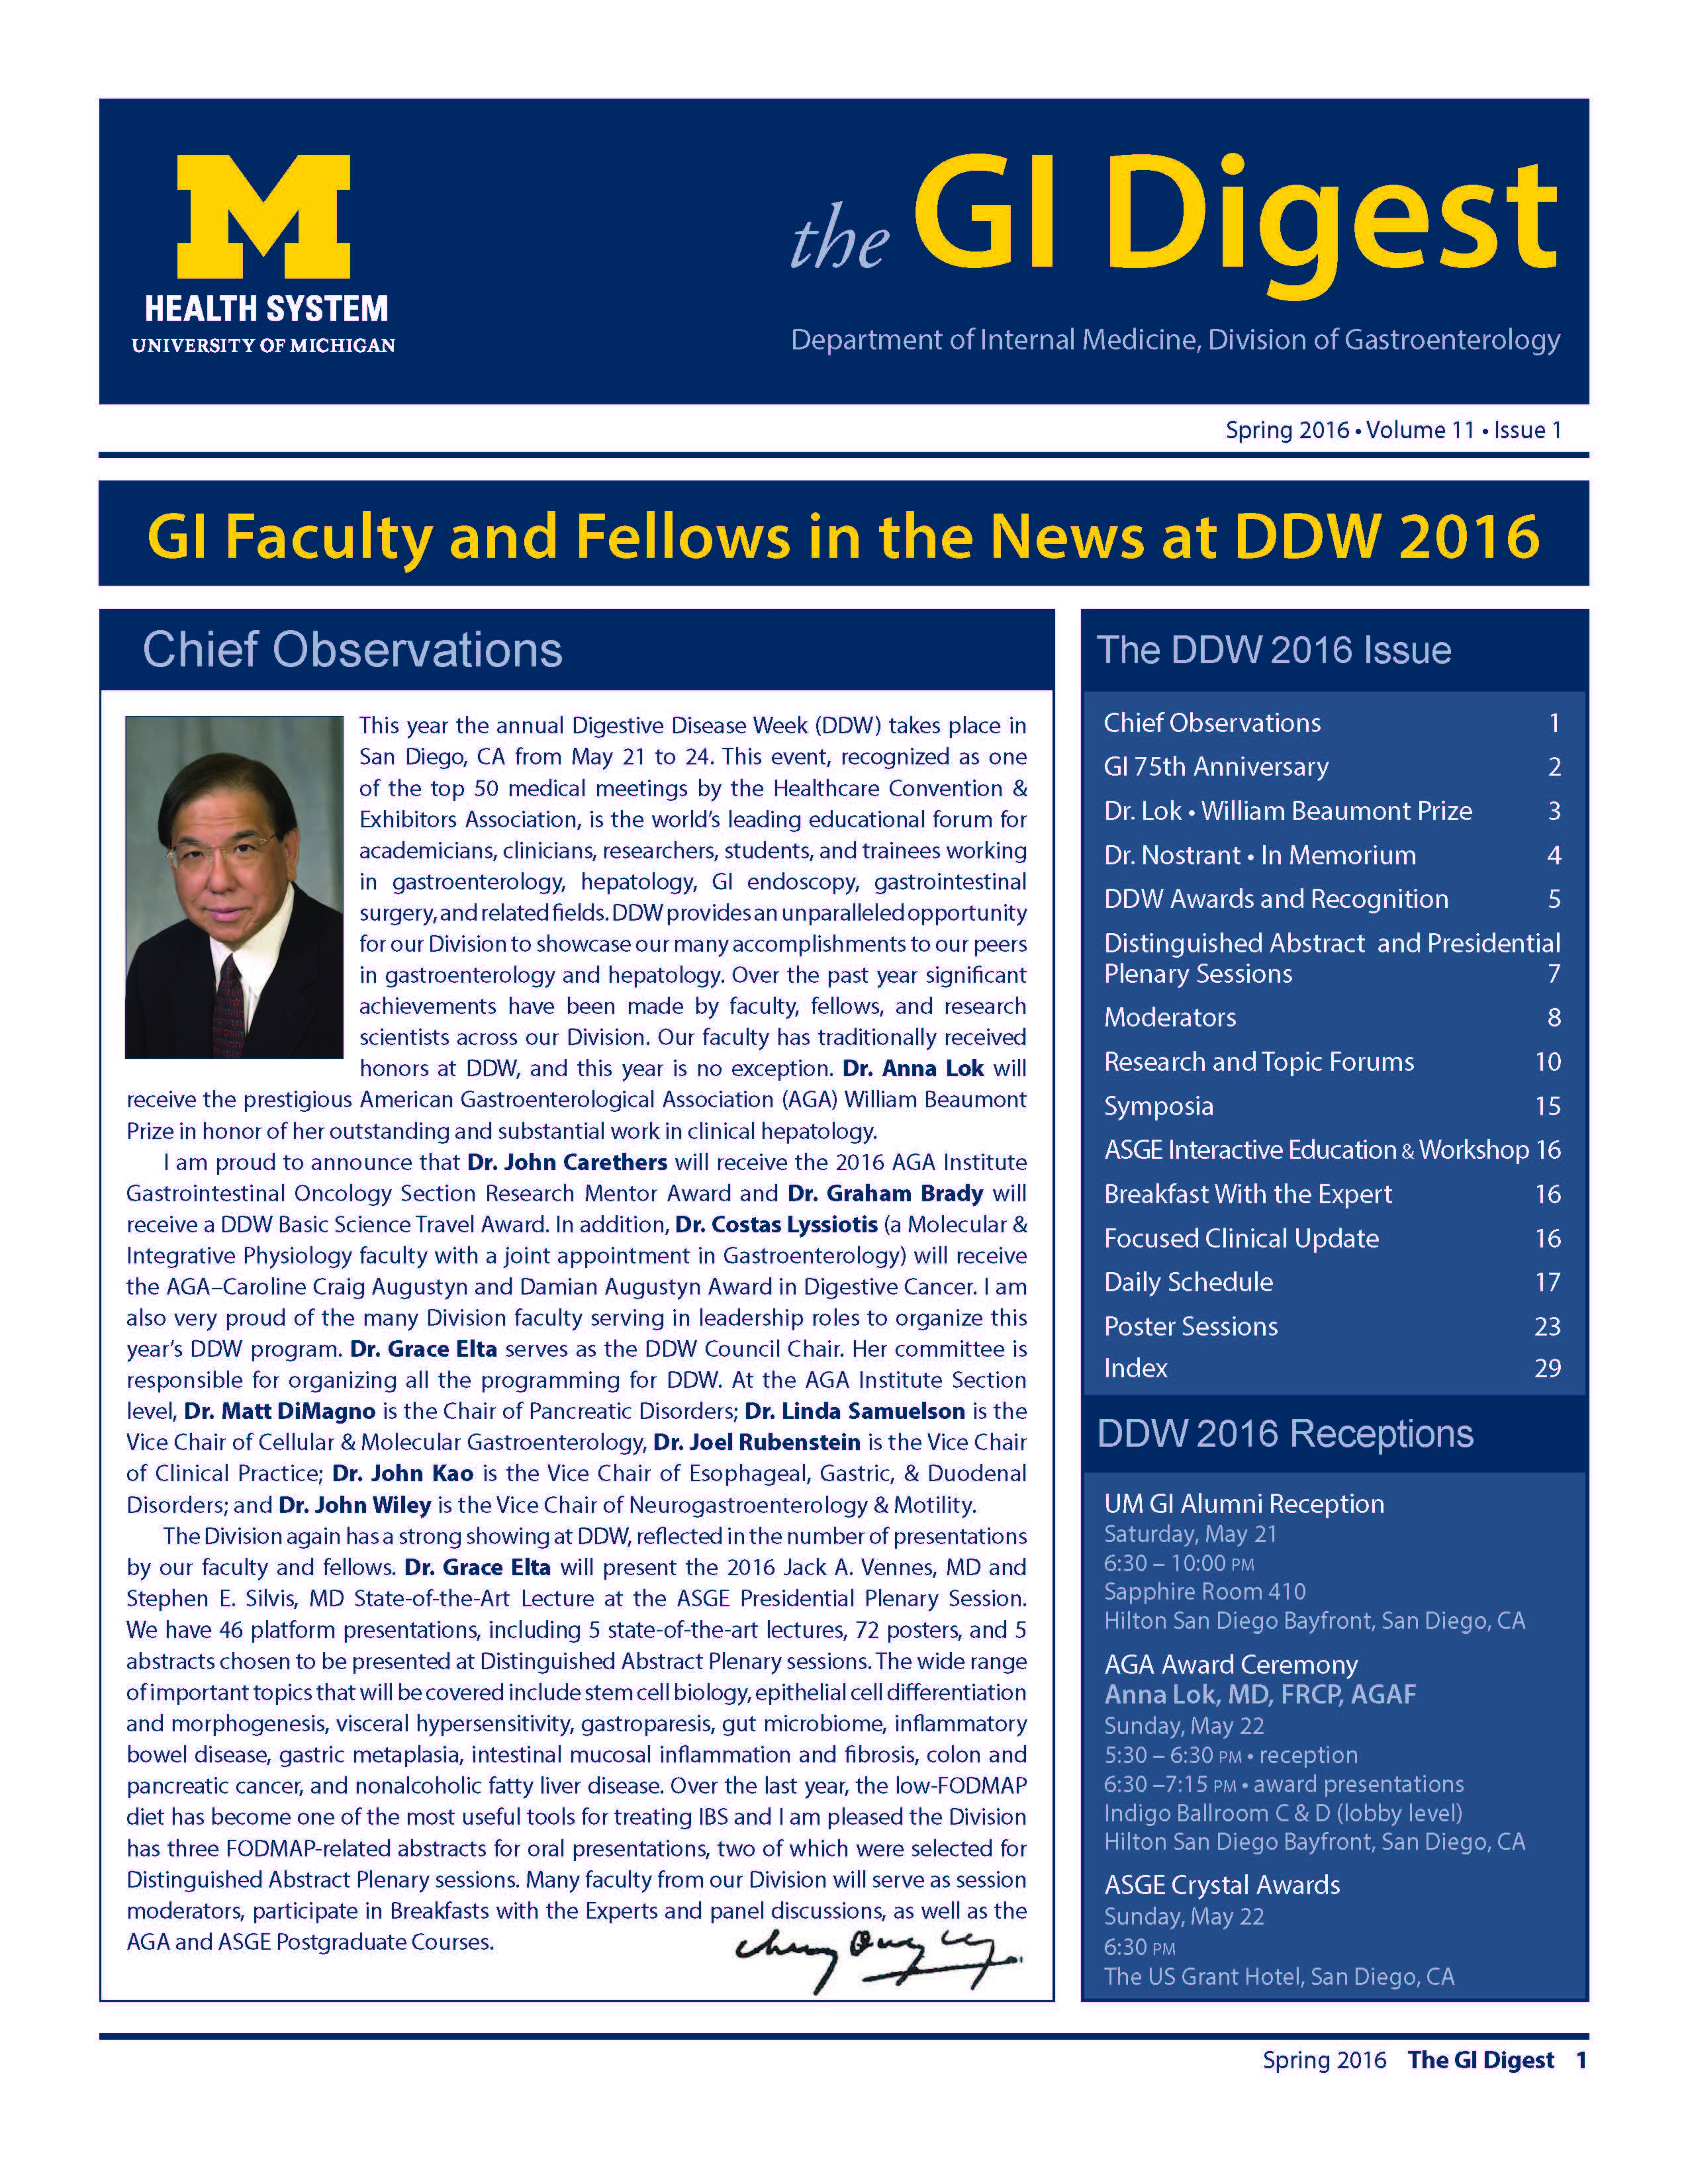 U-M Division of Gastroenterology GI Digest Newsletter